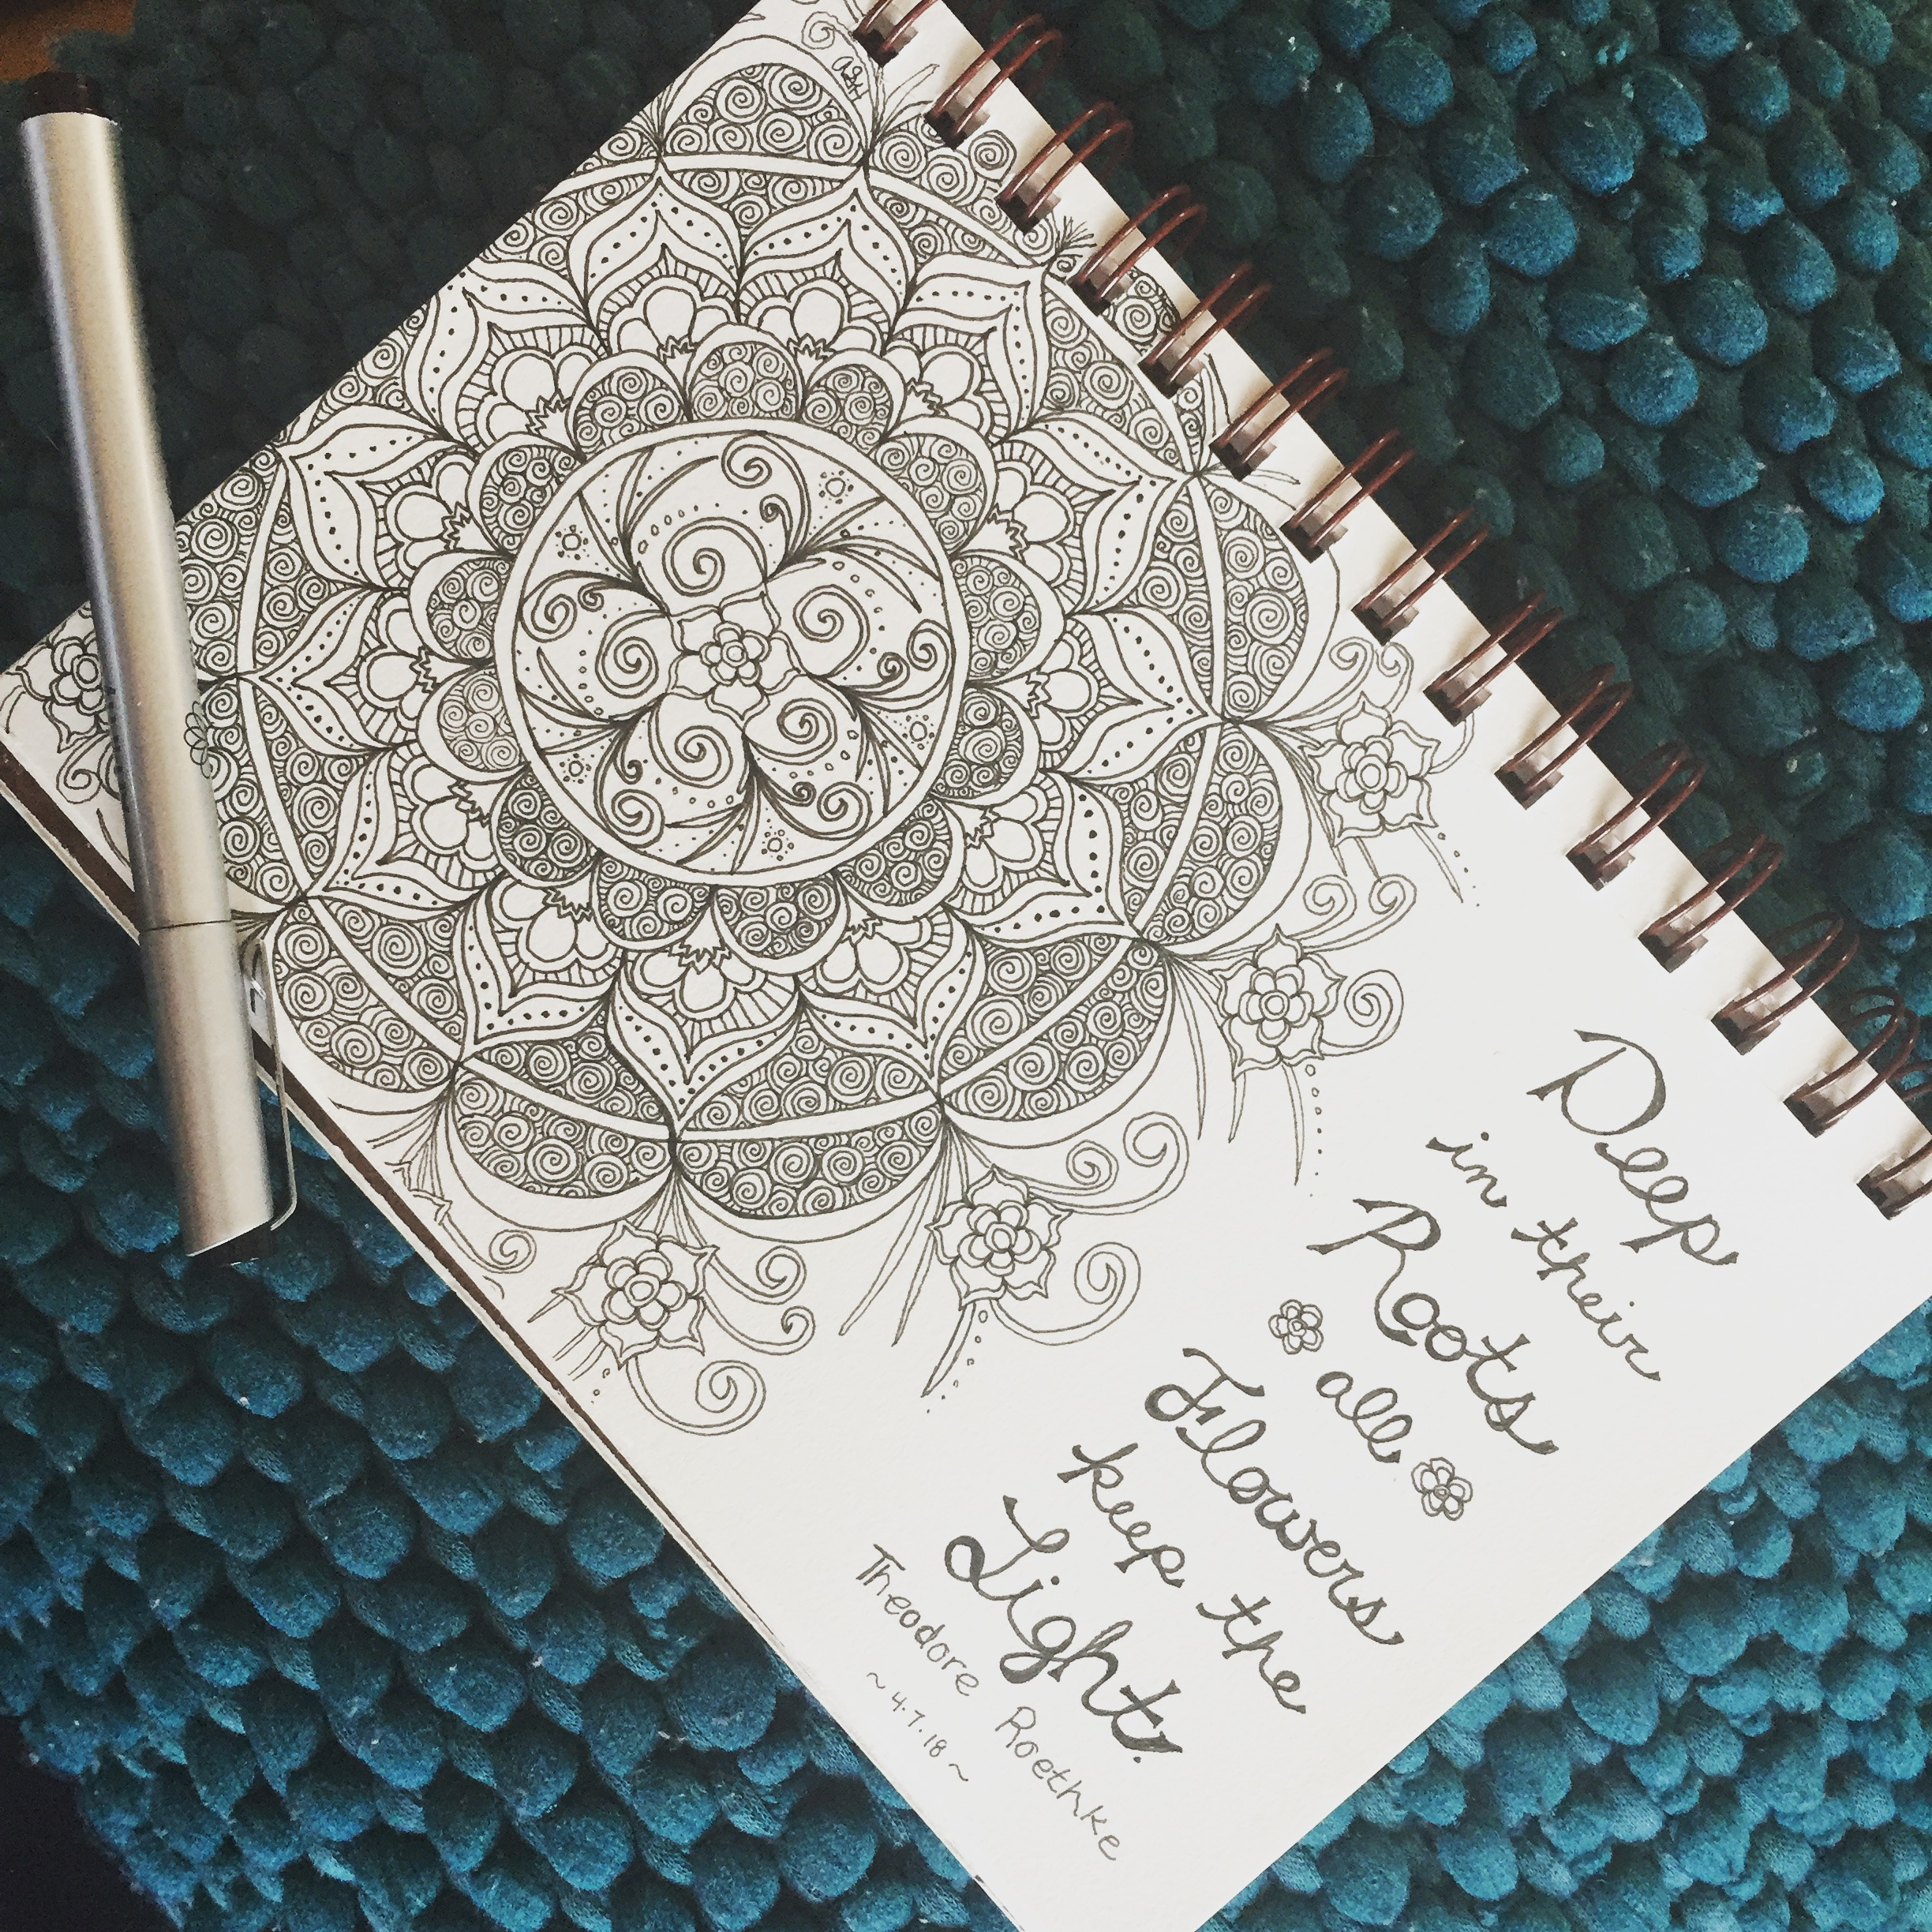 """Drawing always calms and comforts me. I've just rediscovered it in the last year or two and it's been such a game changer for me. I'd go so far as to call it """"transformational"""". What activity brings you comfort?"""